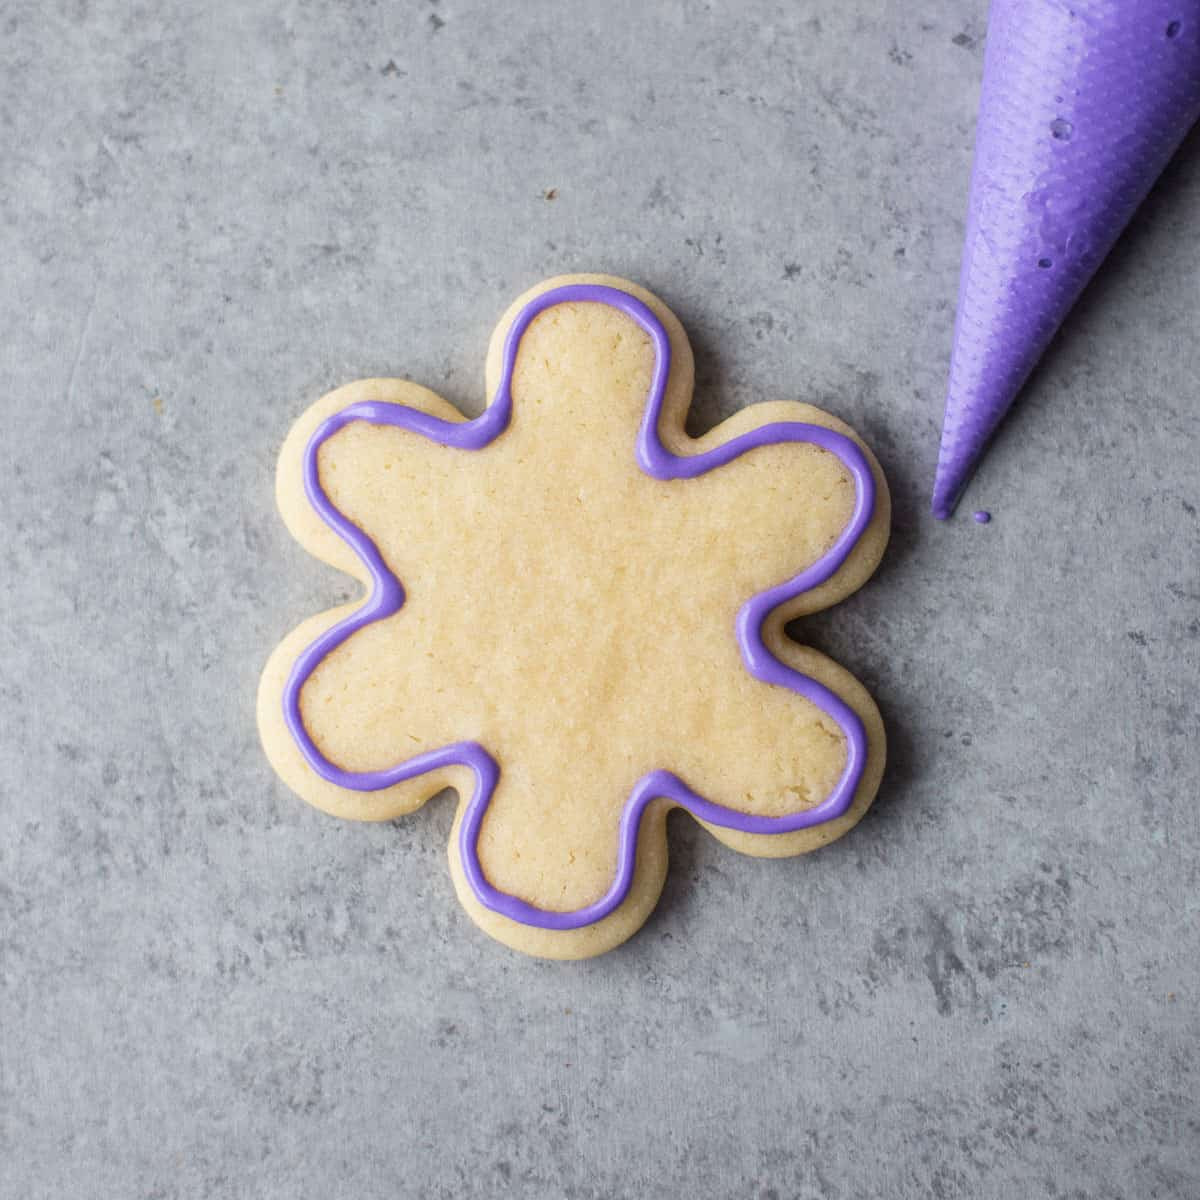 adding purple icing to a sugar cookie